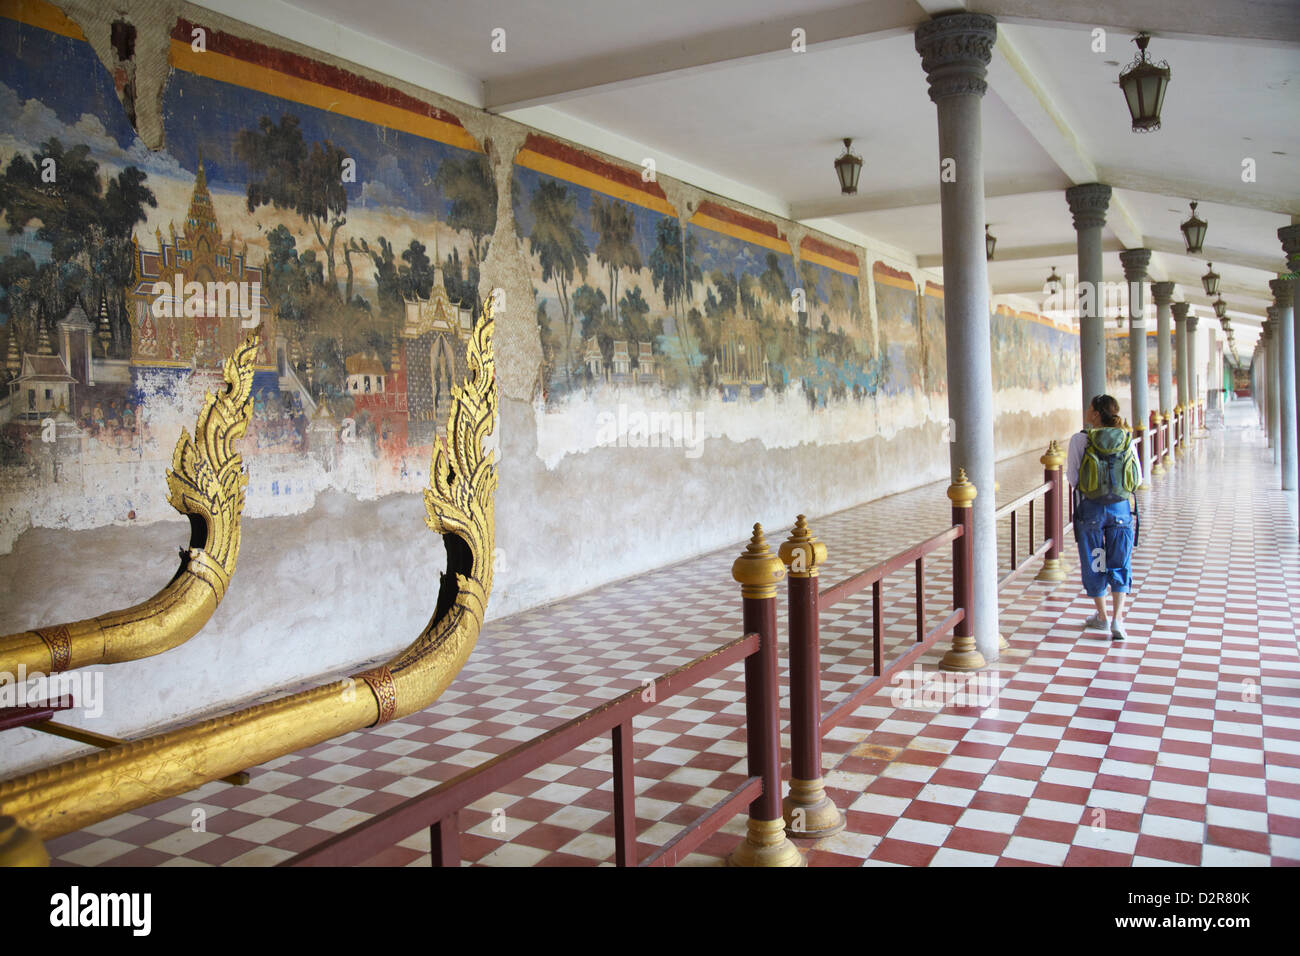 Woman looking at murals at Silver Pagoda in Royal Palace, Phnom Penh, Cambodia, Indochina, Southeast Asia, Asia - Stock Image